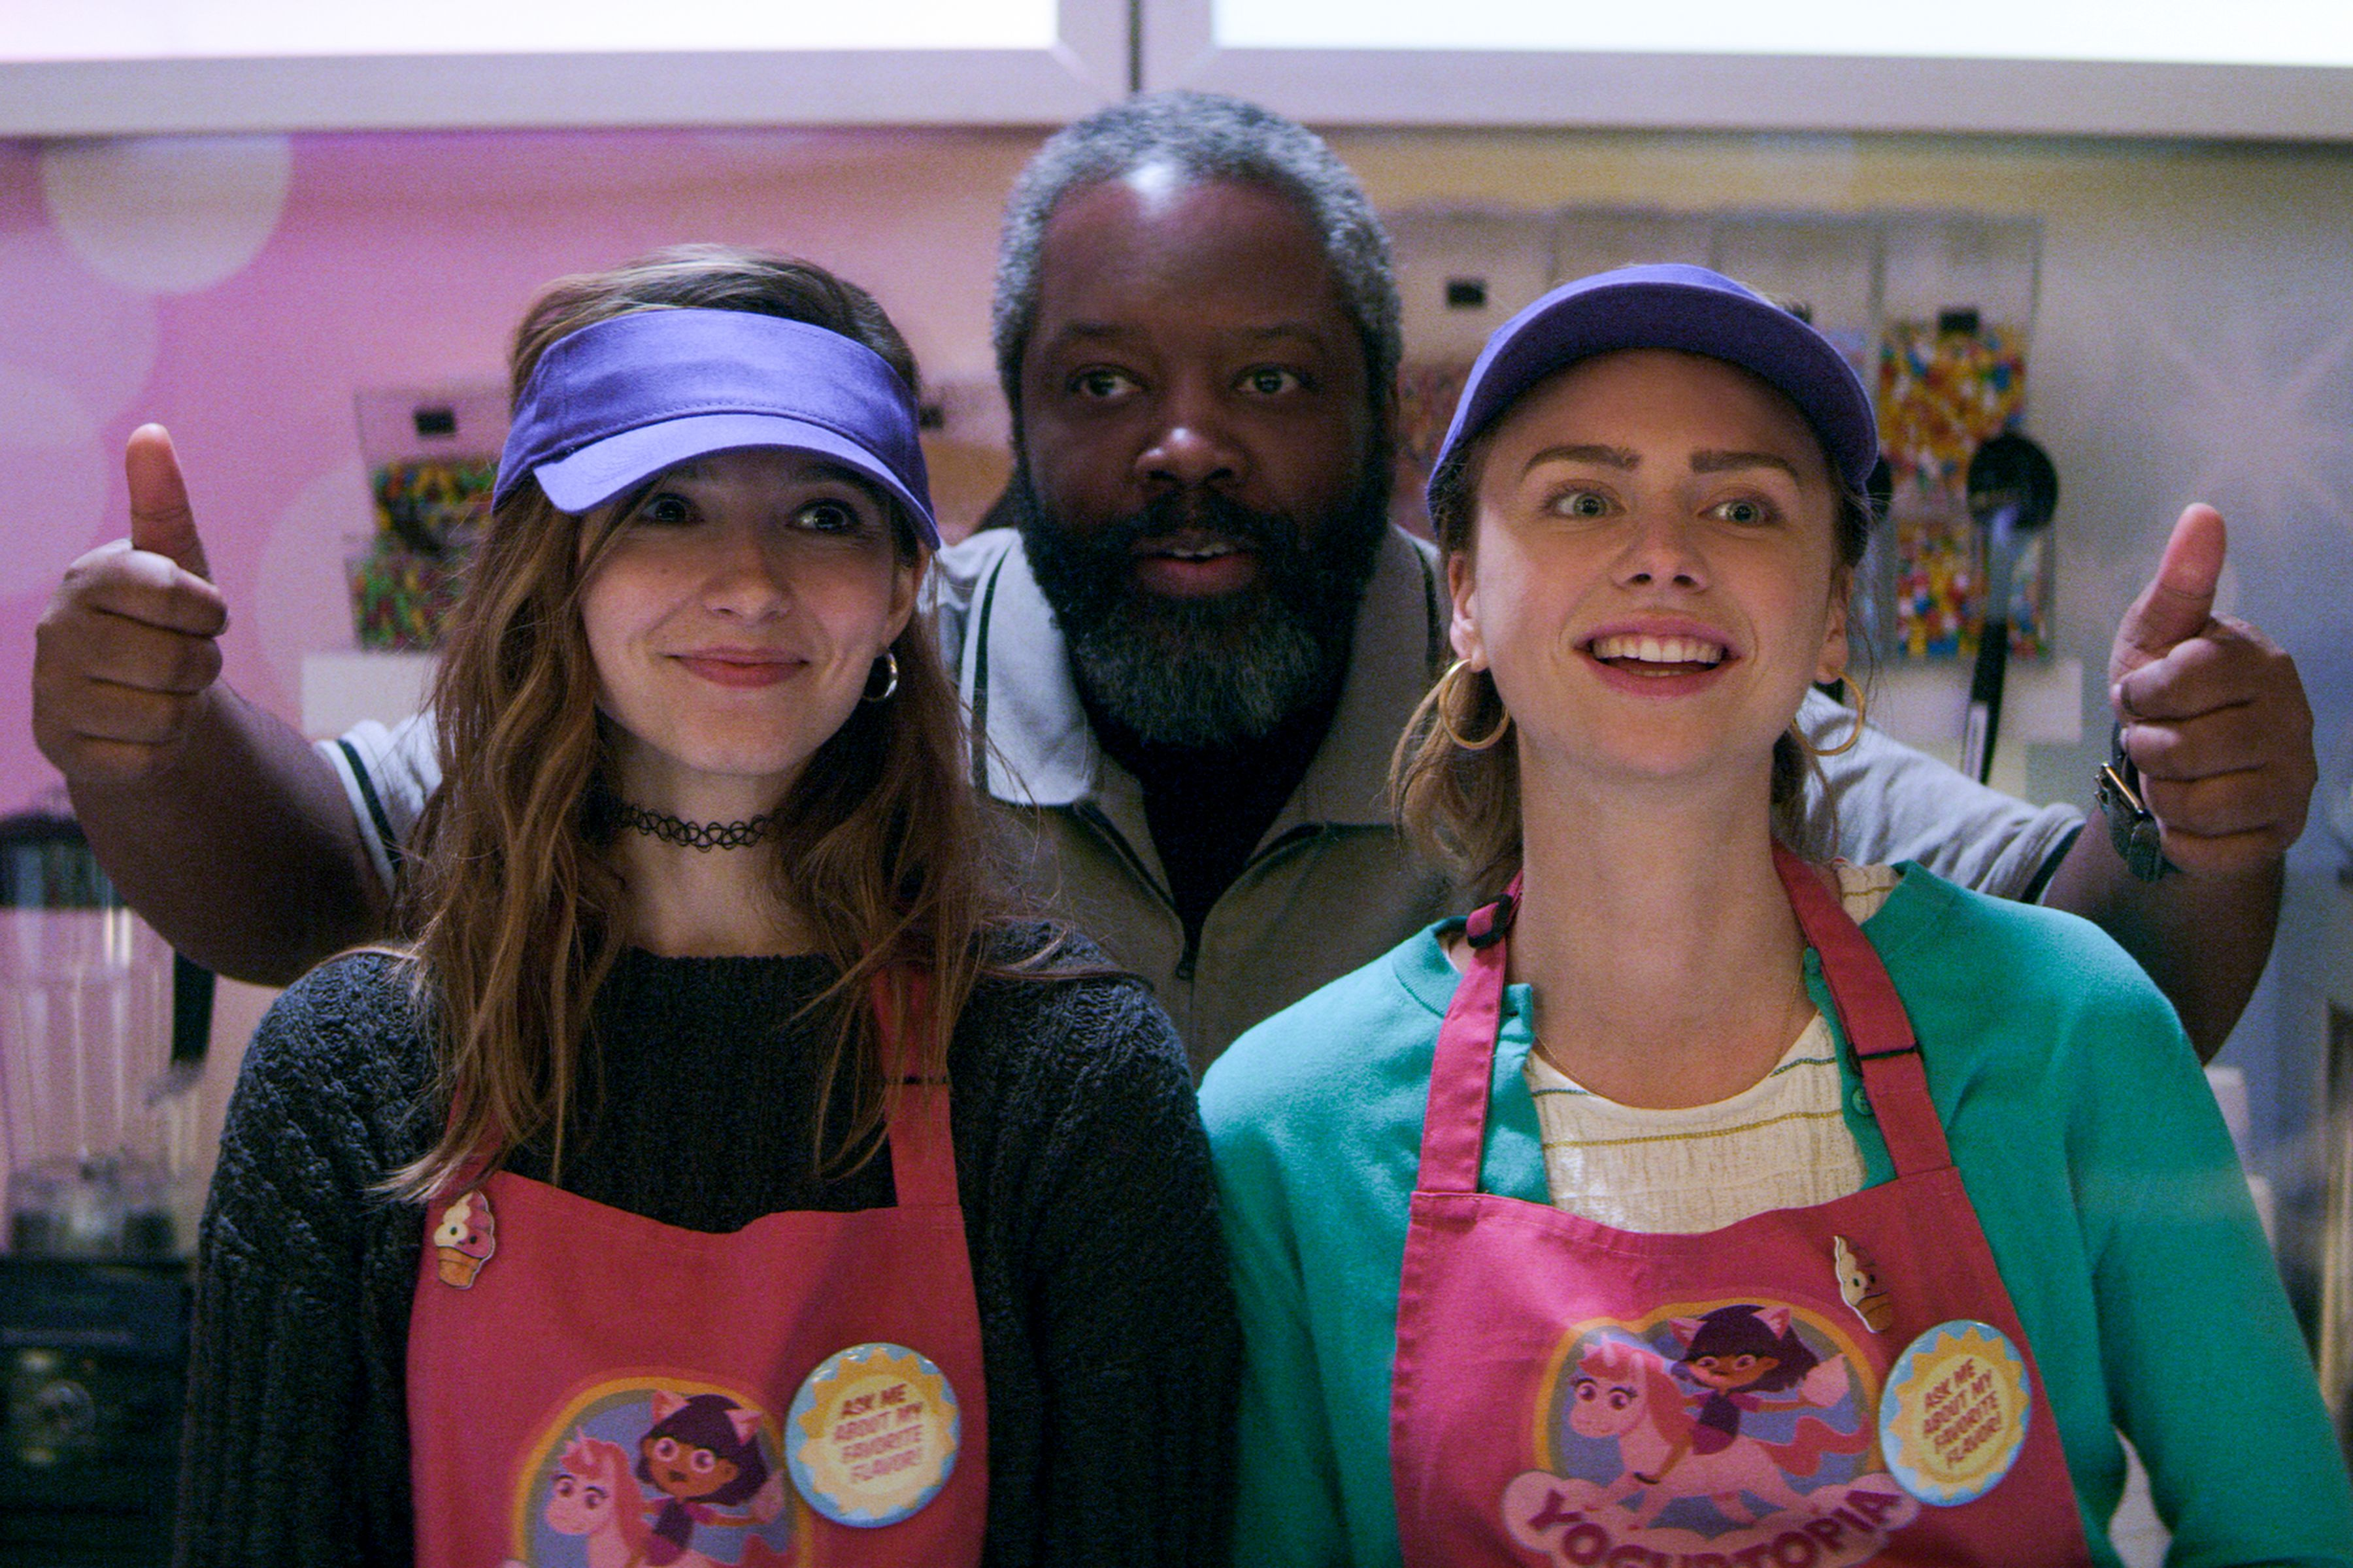 Blair Wesley, Terrance Coin, and Sterling Wesley smiling and working in a frozen yogurt shop.